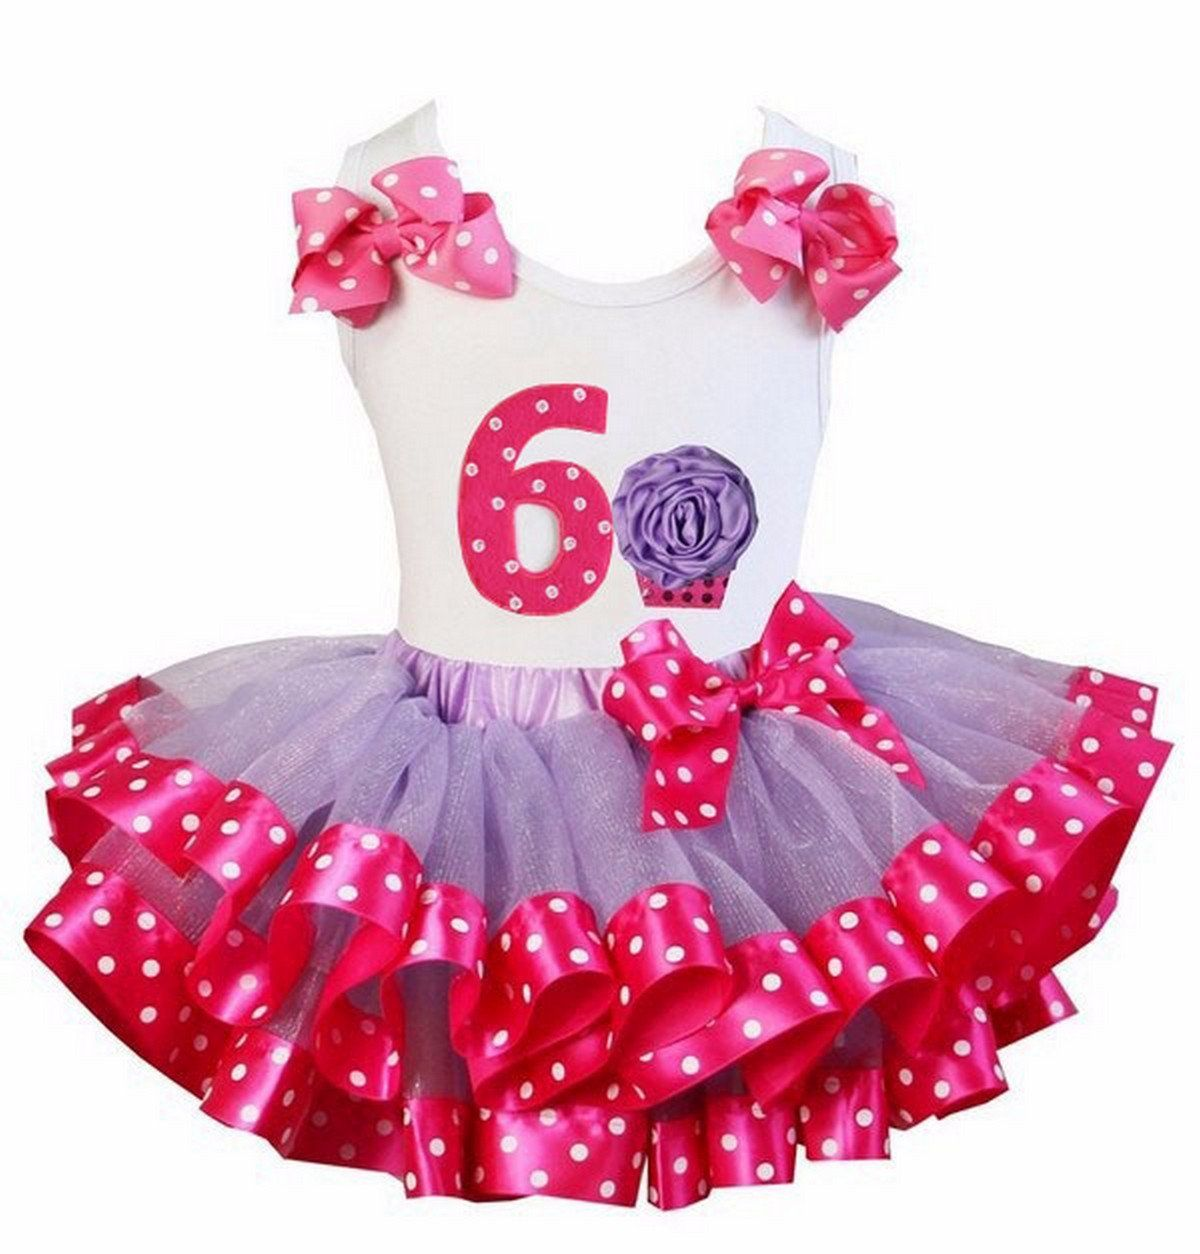 Kirei Sui Hot Pink Polka Dots Satin Trimmed Tutu 4th Rosette Cupcake Tank Top Set